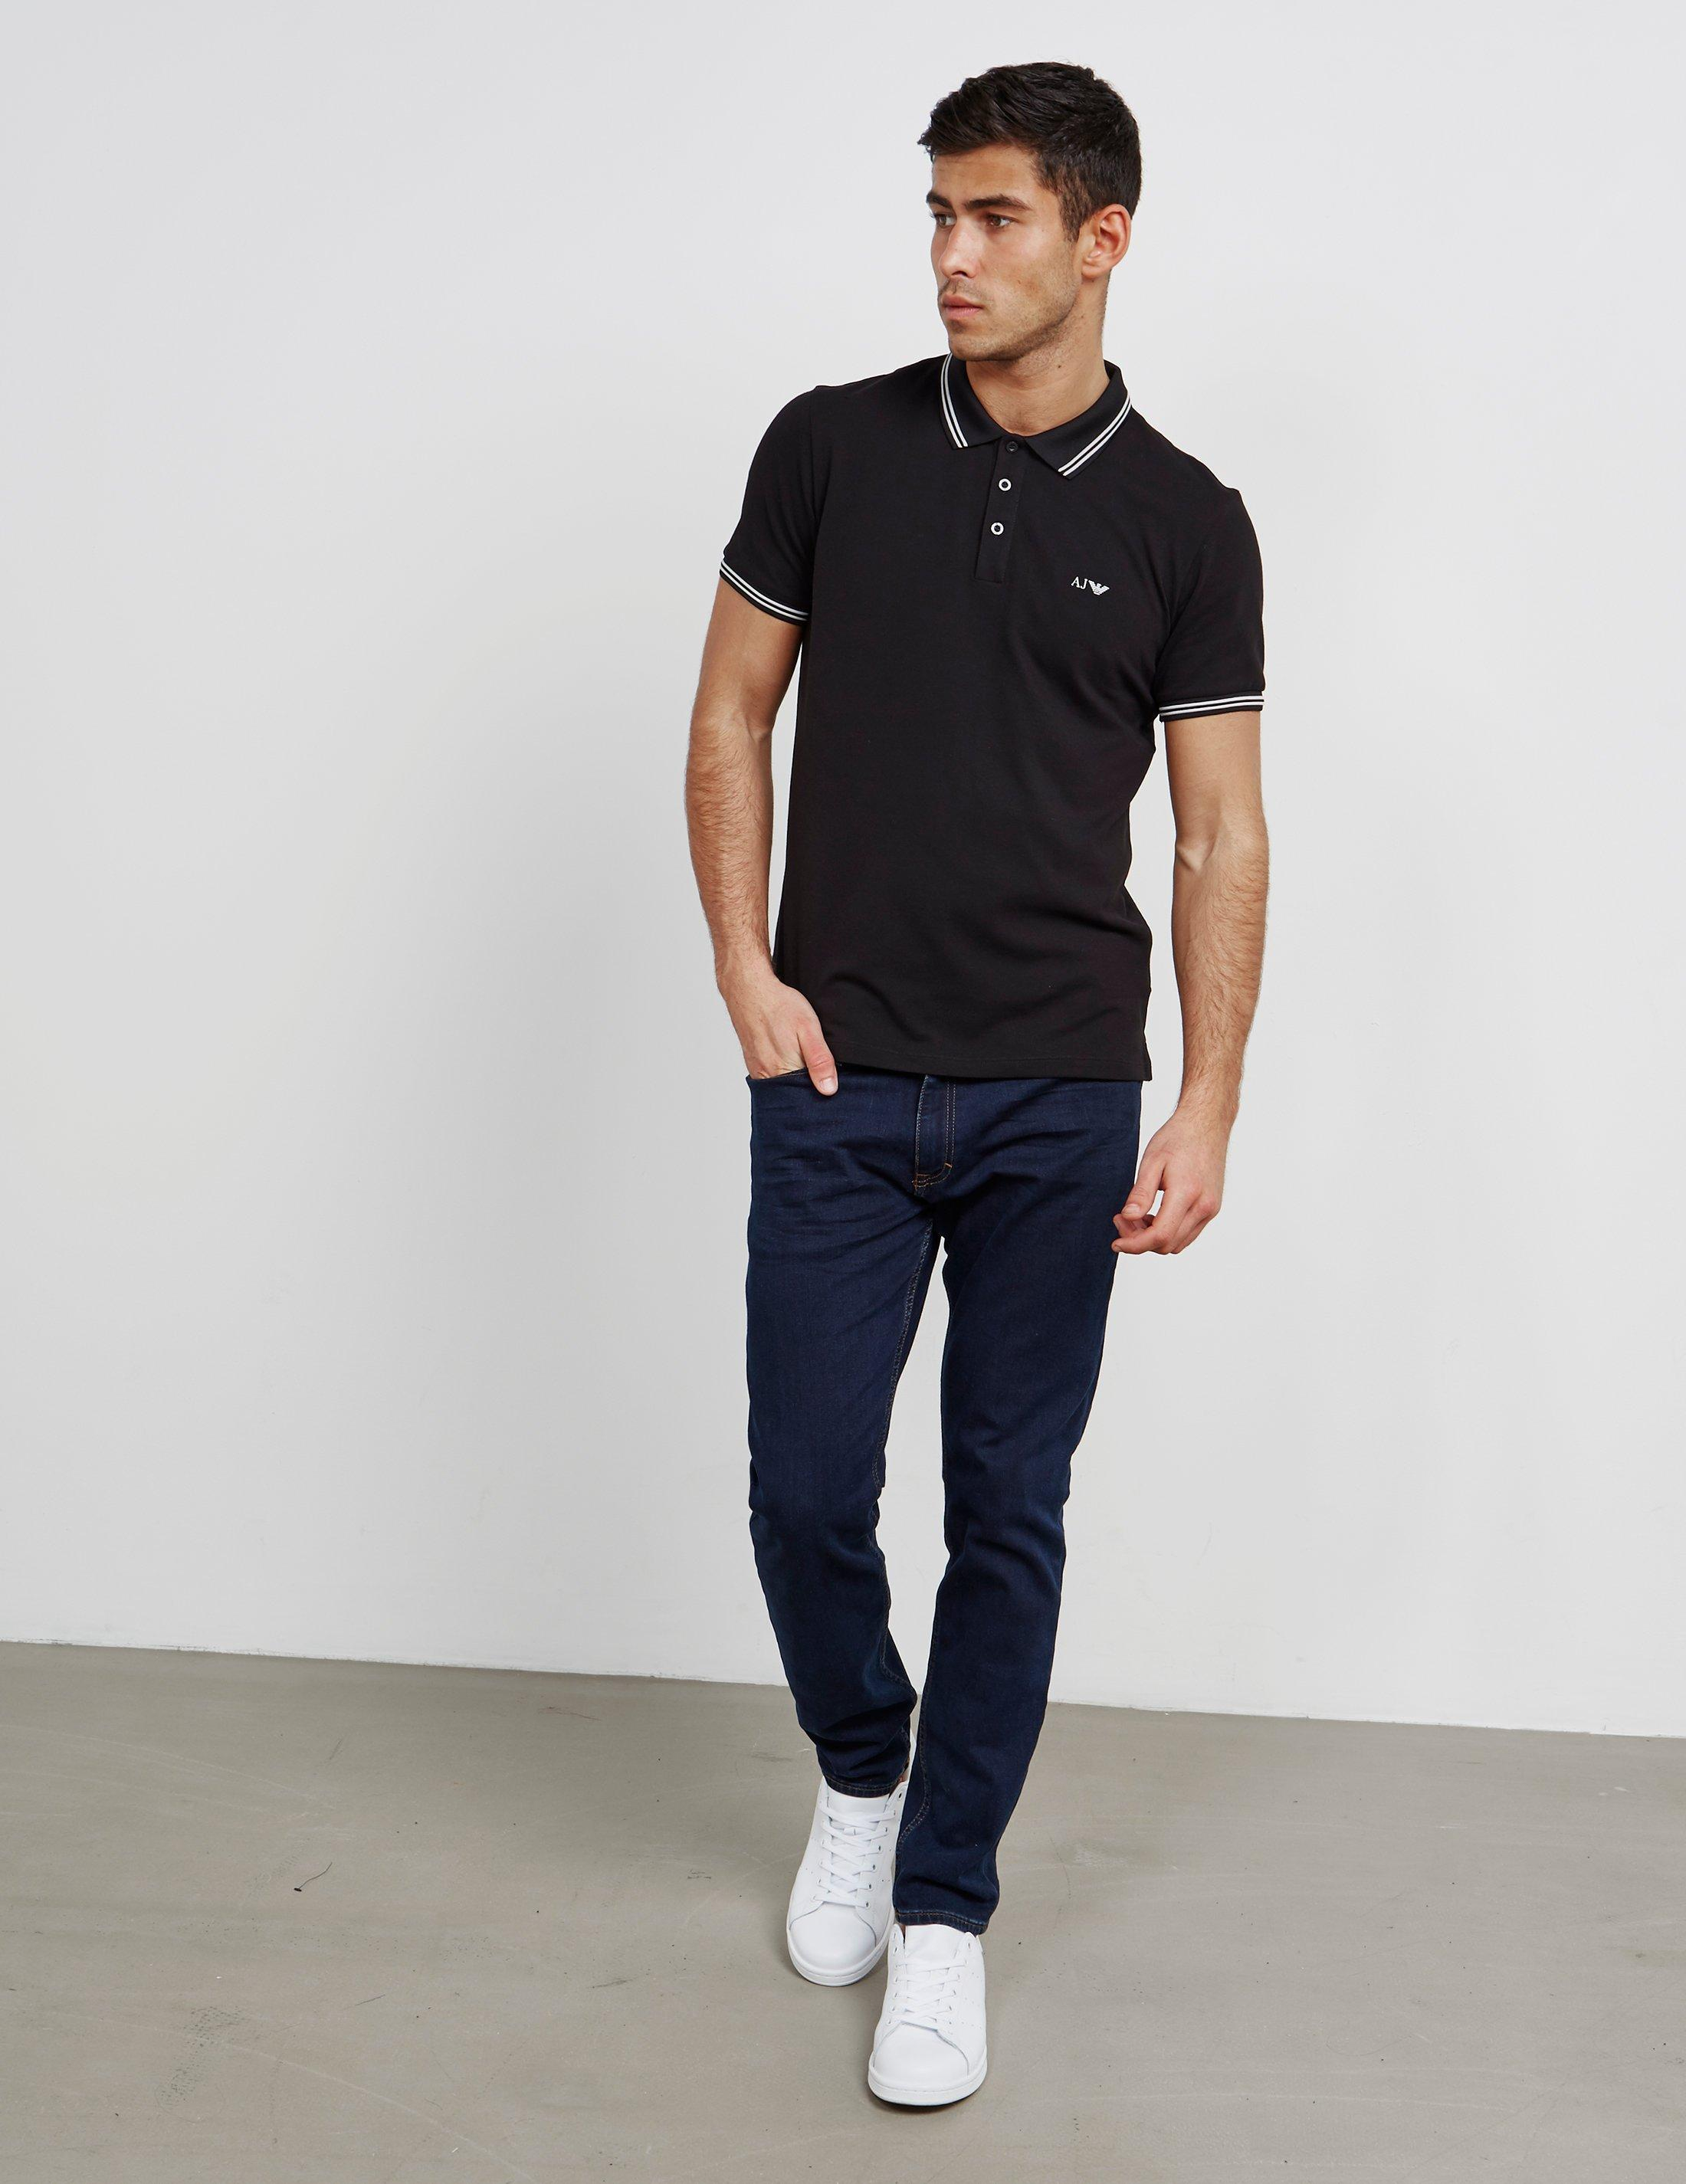 cd235989 Armani Jeans Mens Twin Tipped Short Sleeve Polo Shirt Black in Black ...